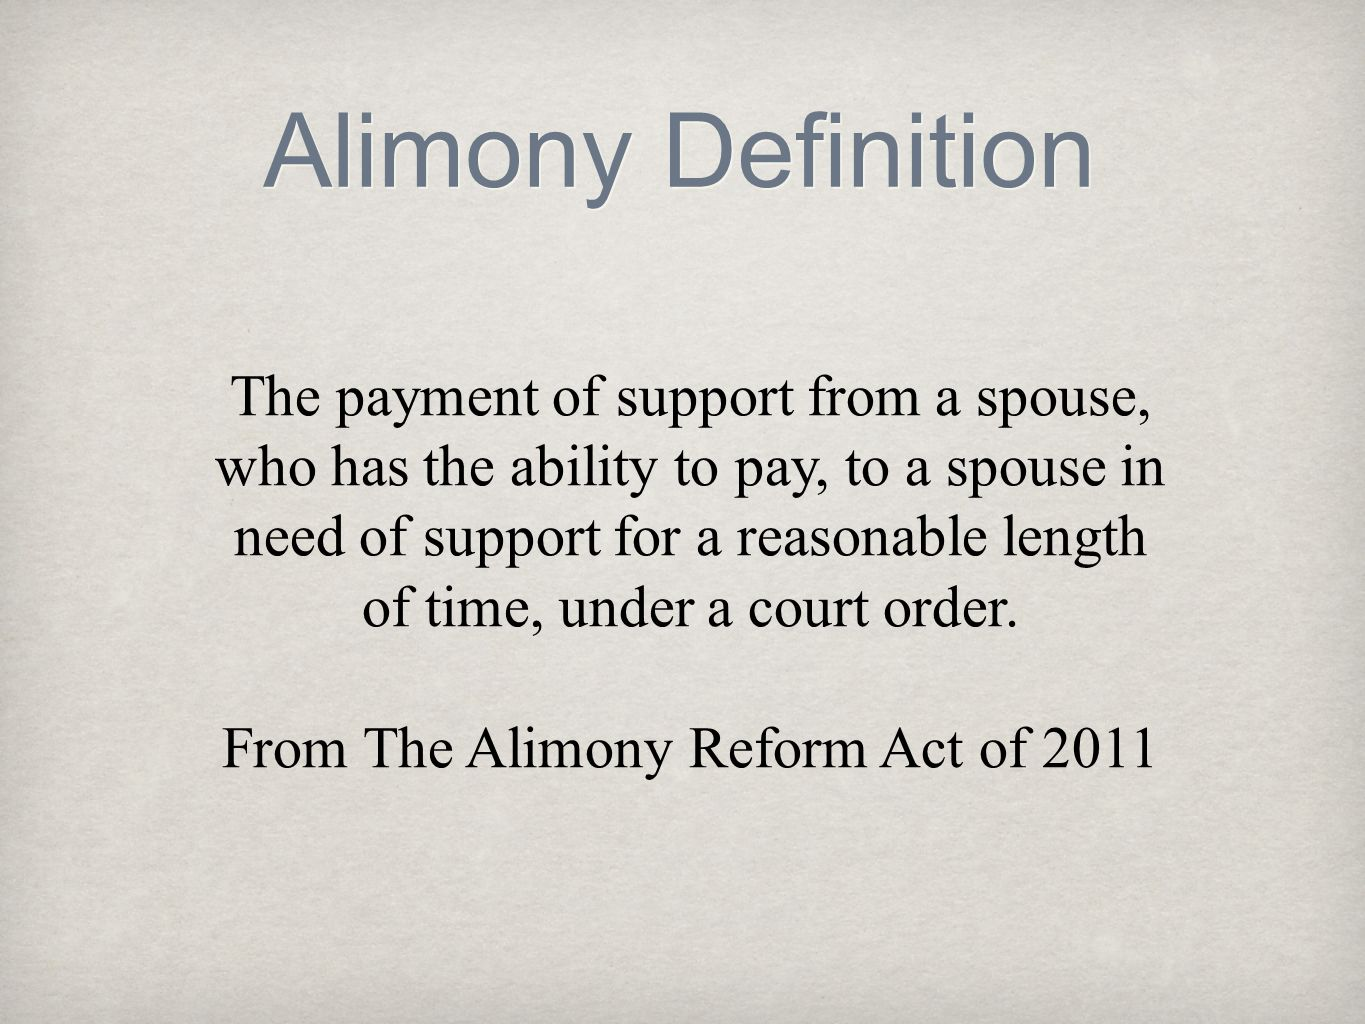 From The Alimony Reform Act of 2011